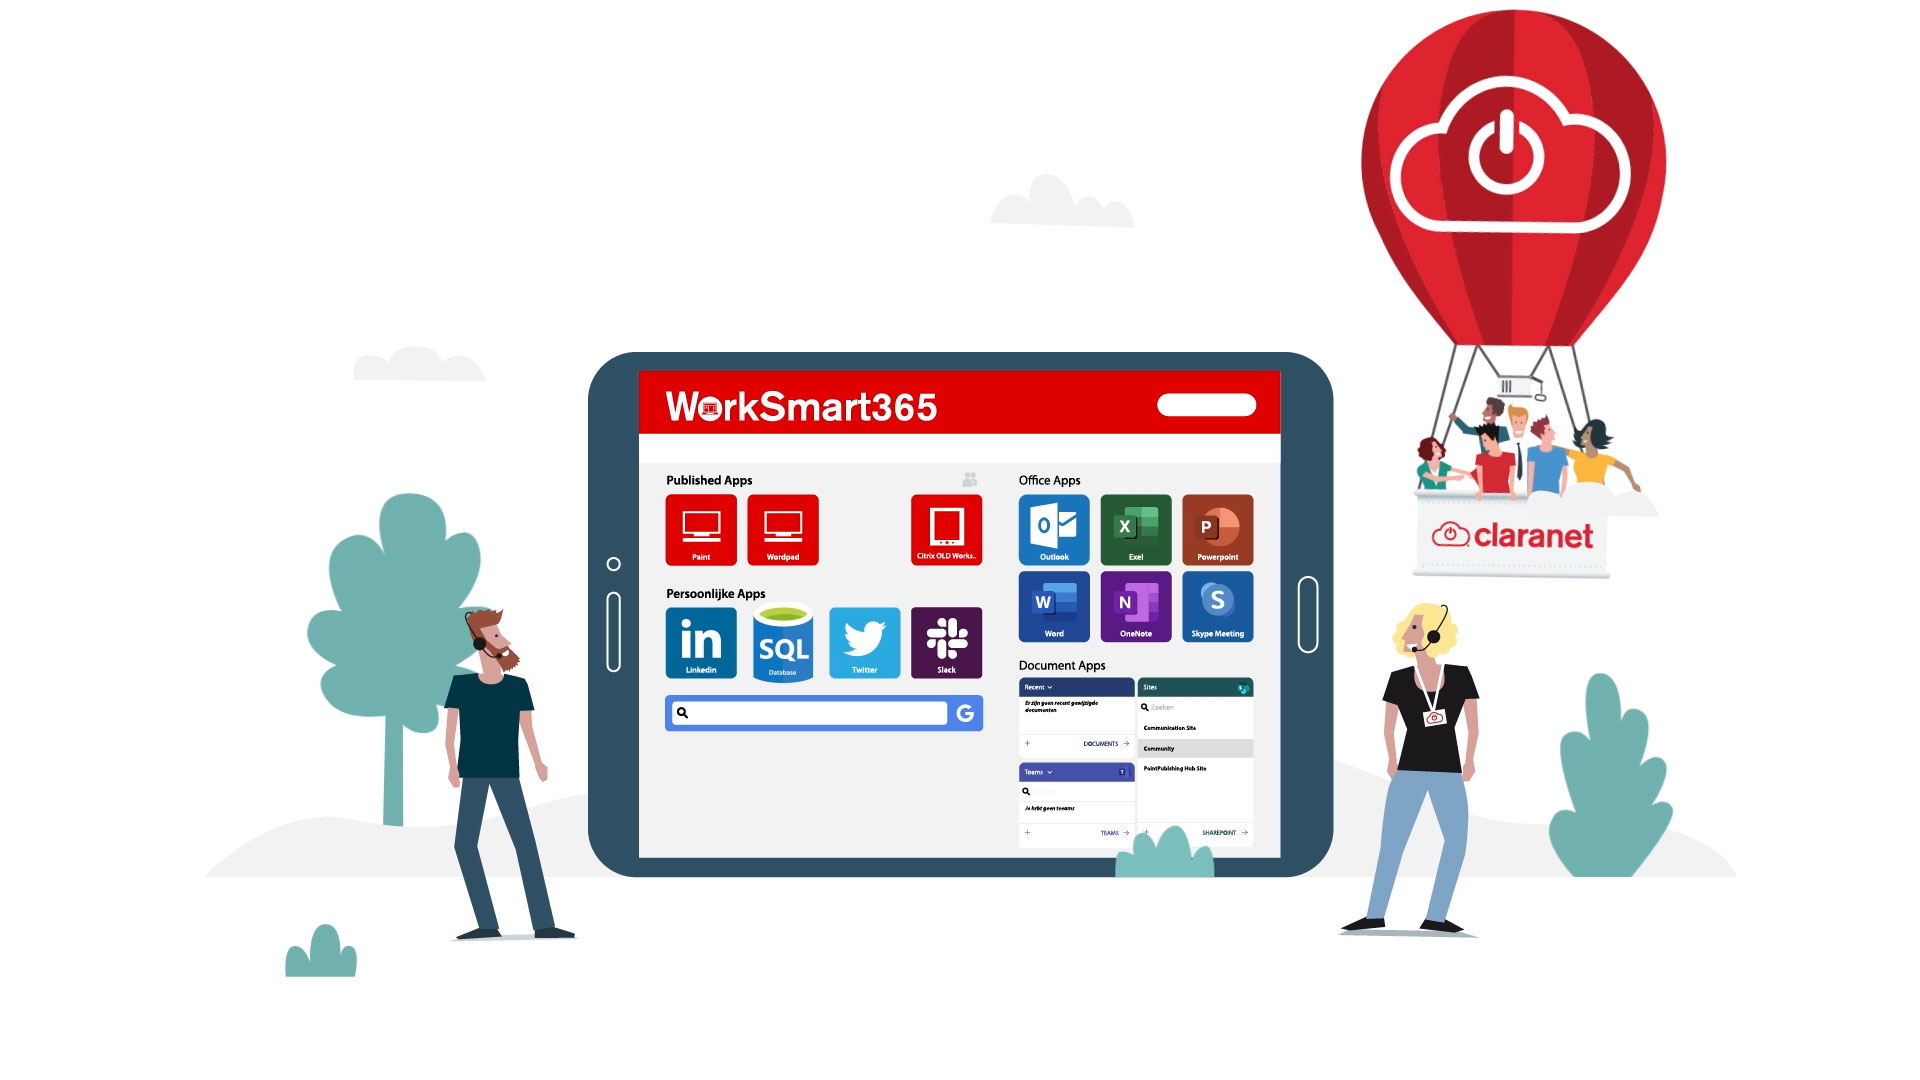 WorkSmart365 De ideale werkplek blog